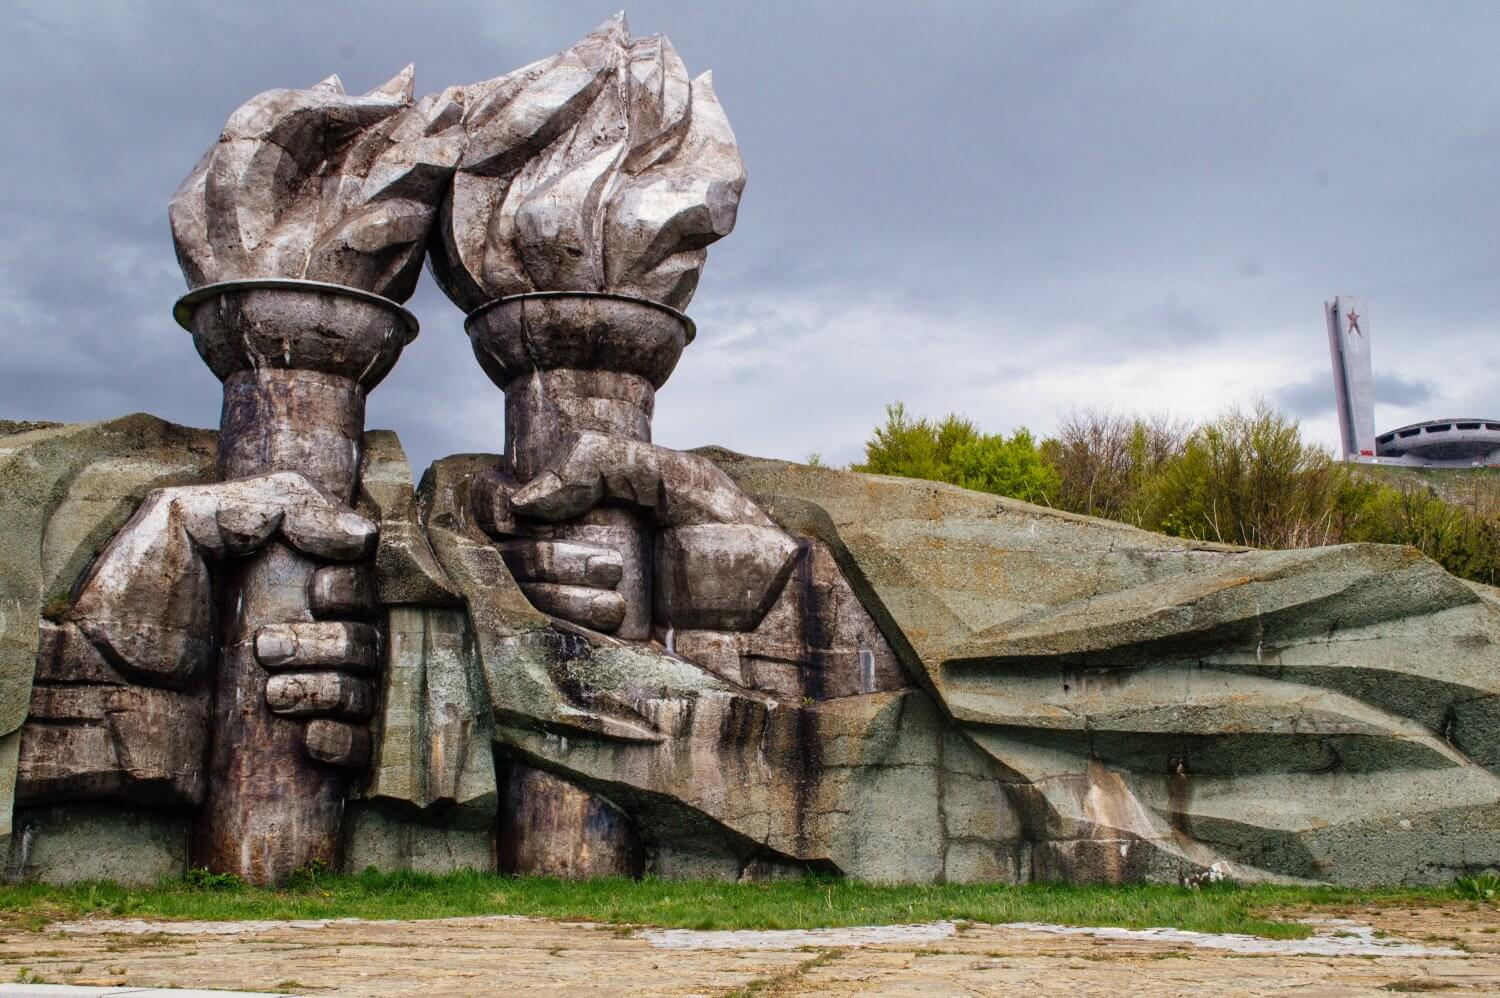 12 Incredible Bulgaria Travel Destinations (That You Probably Didn't Know About)